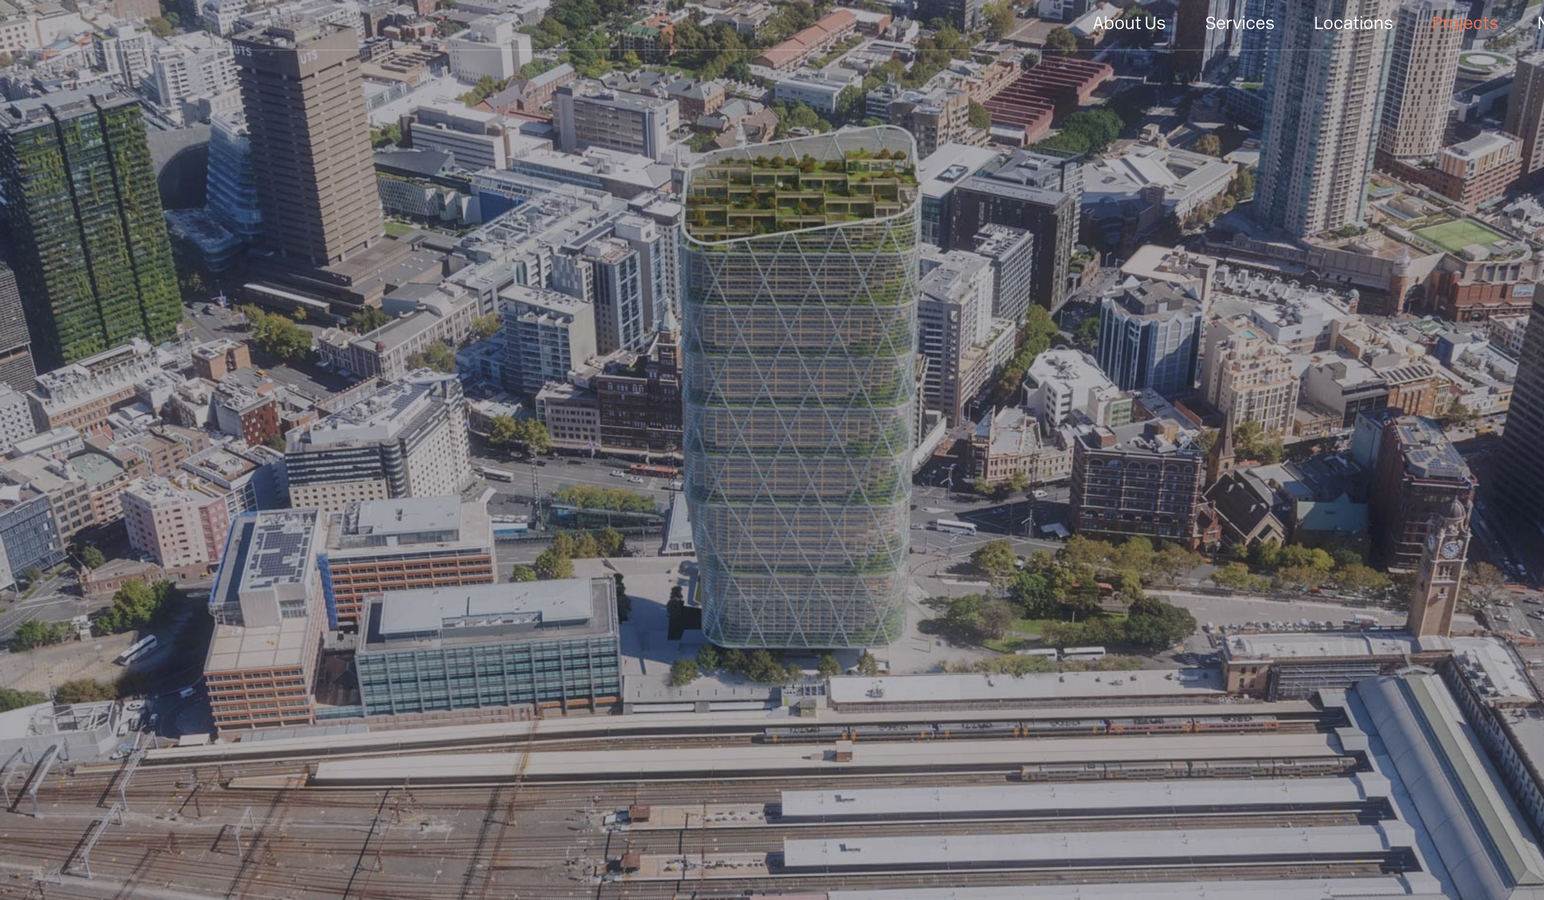 World's tallest commercial hybrid timber tower for Sydney revealed by SHoP Architects and BVN Design - Sheet1